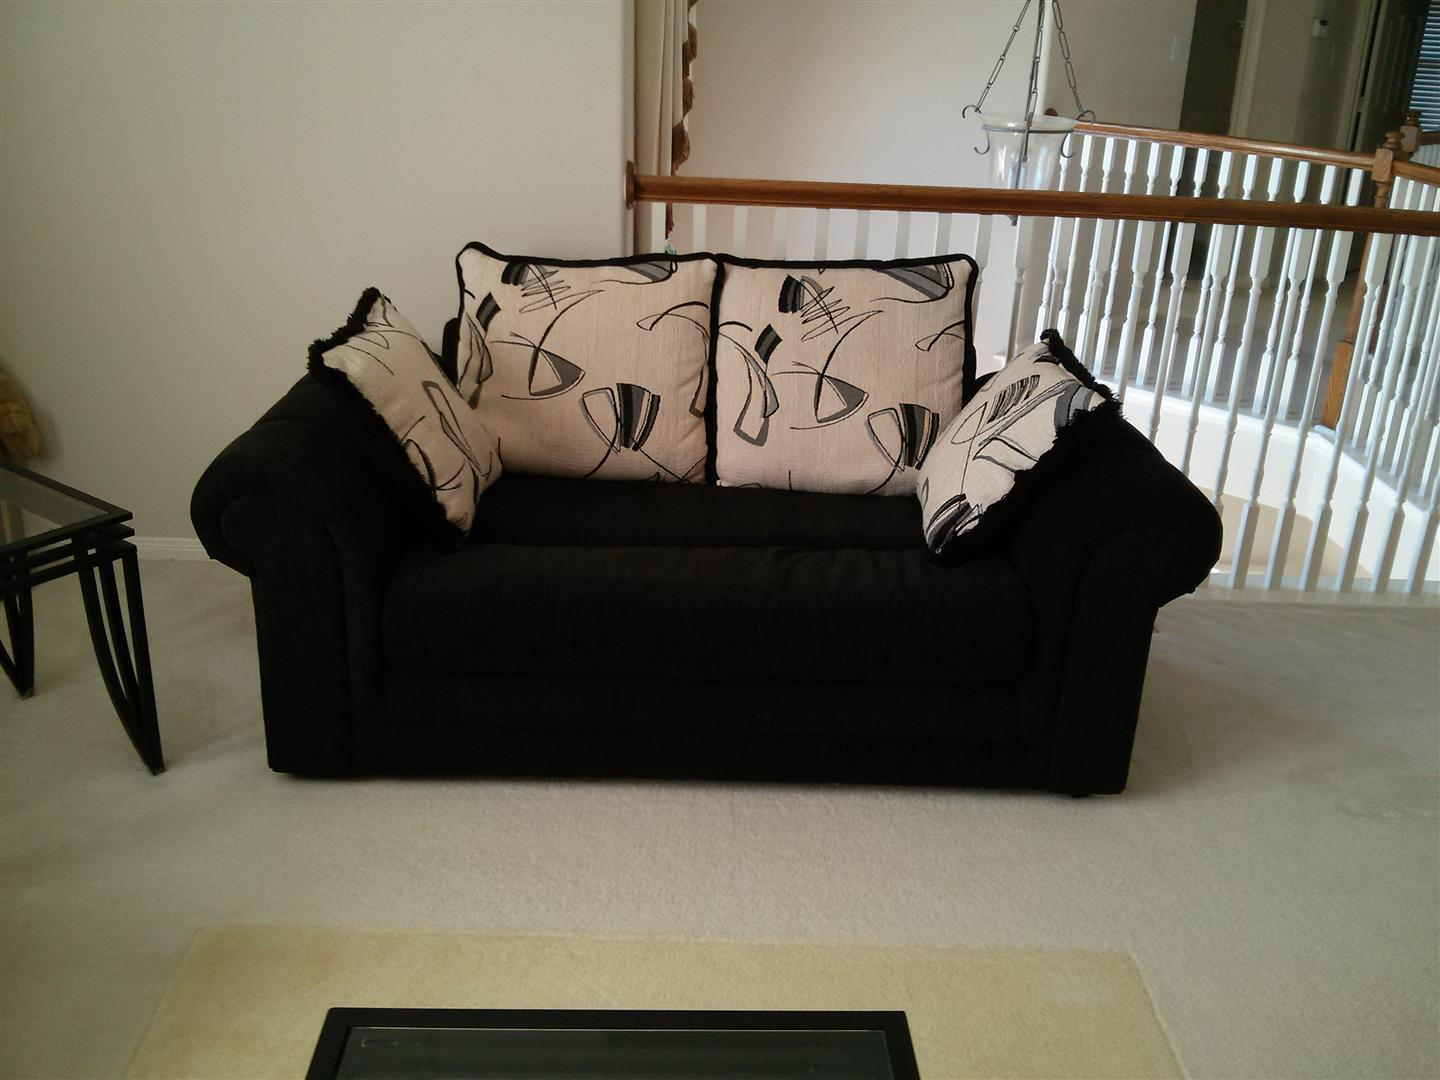 Sofa For Sale Houston Furniture For Sale Pt 2 Near Houston Tx Classified Ads Buy